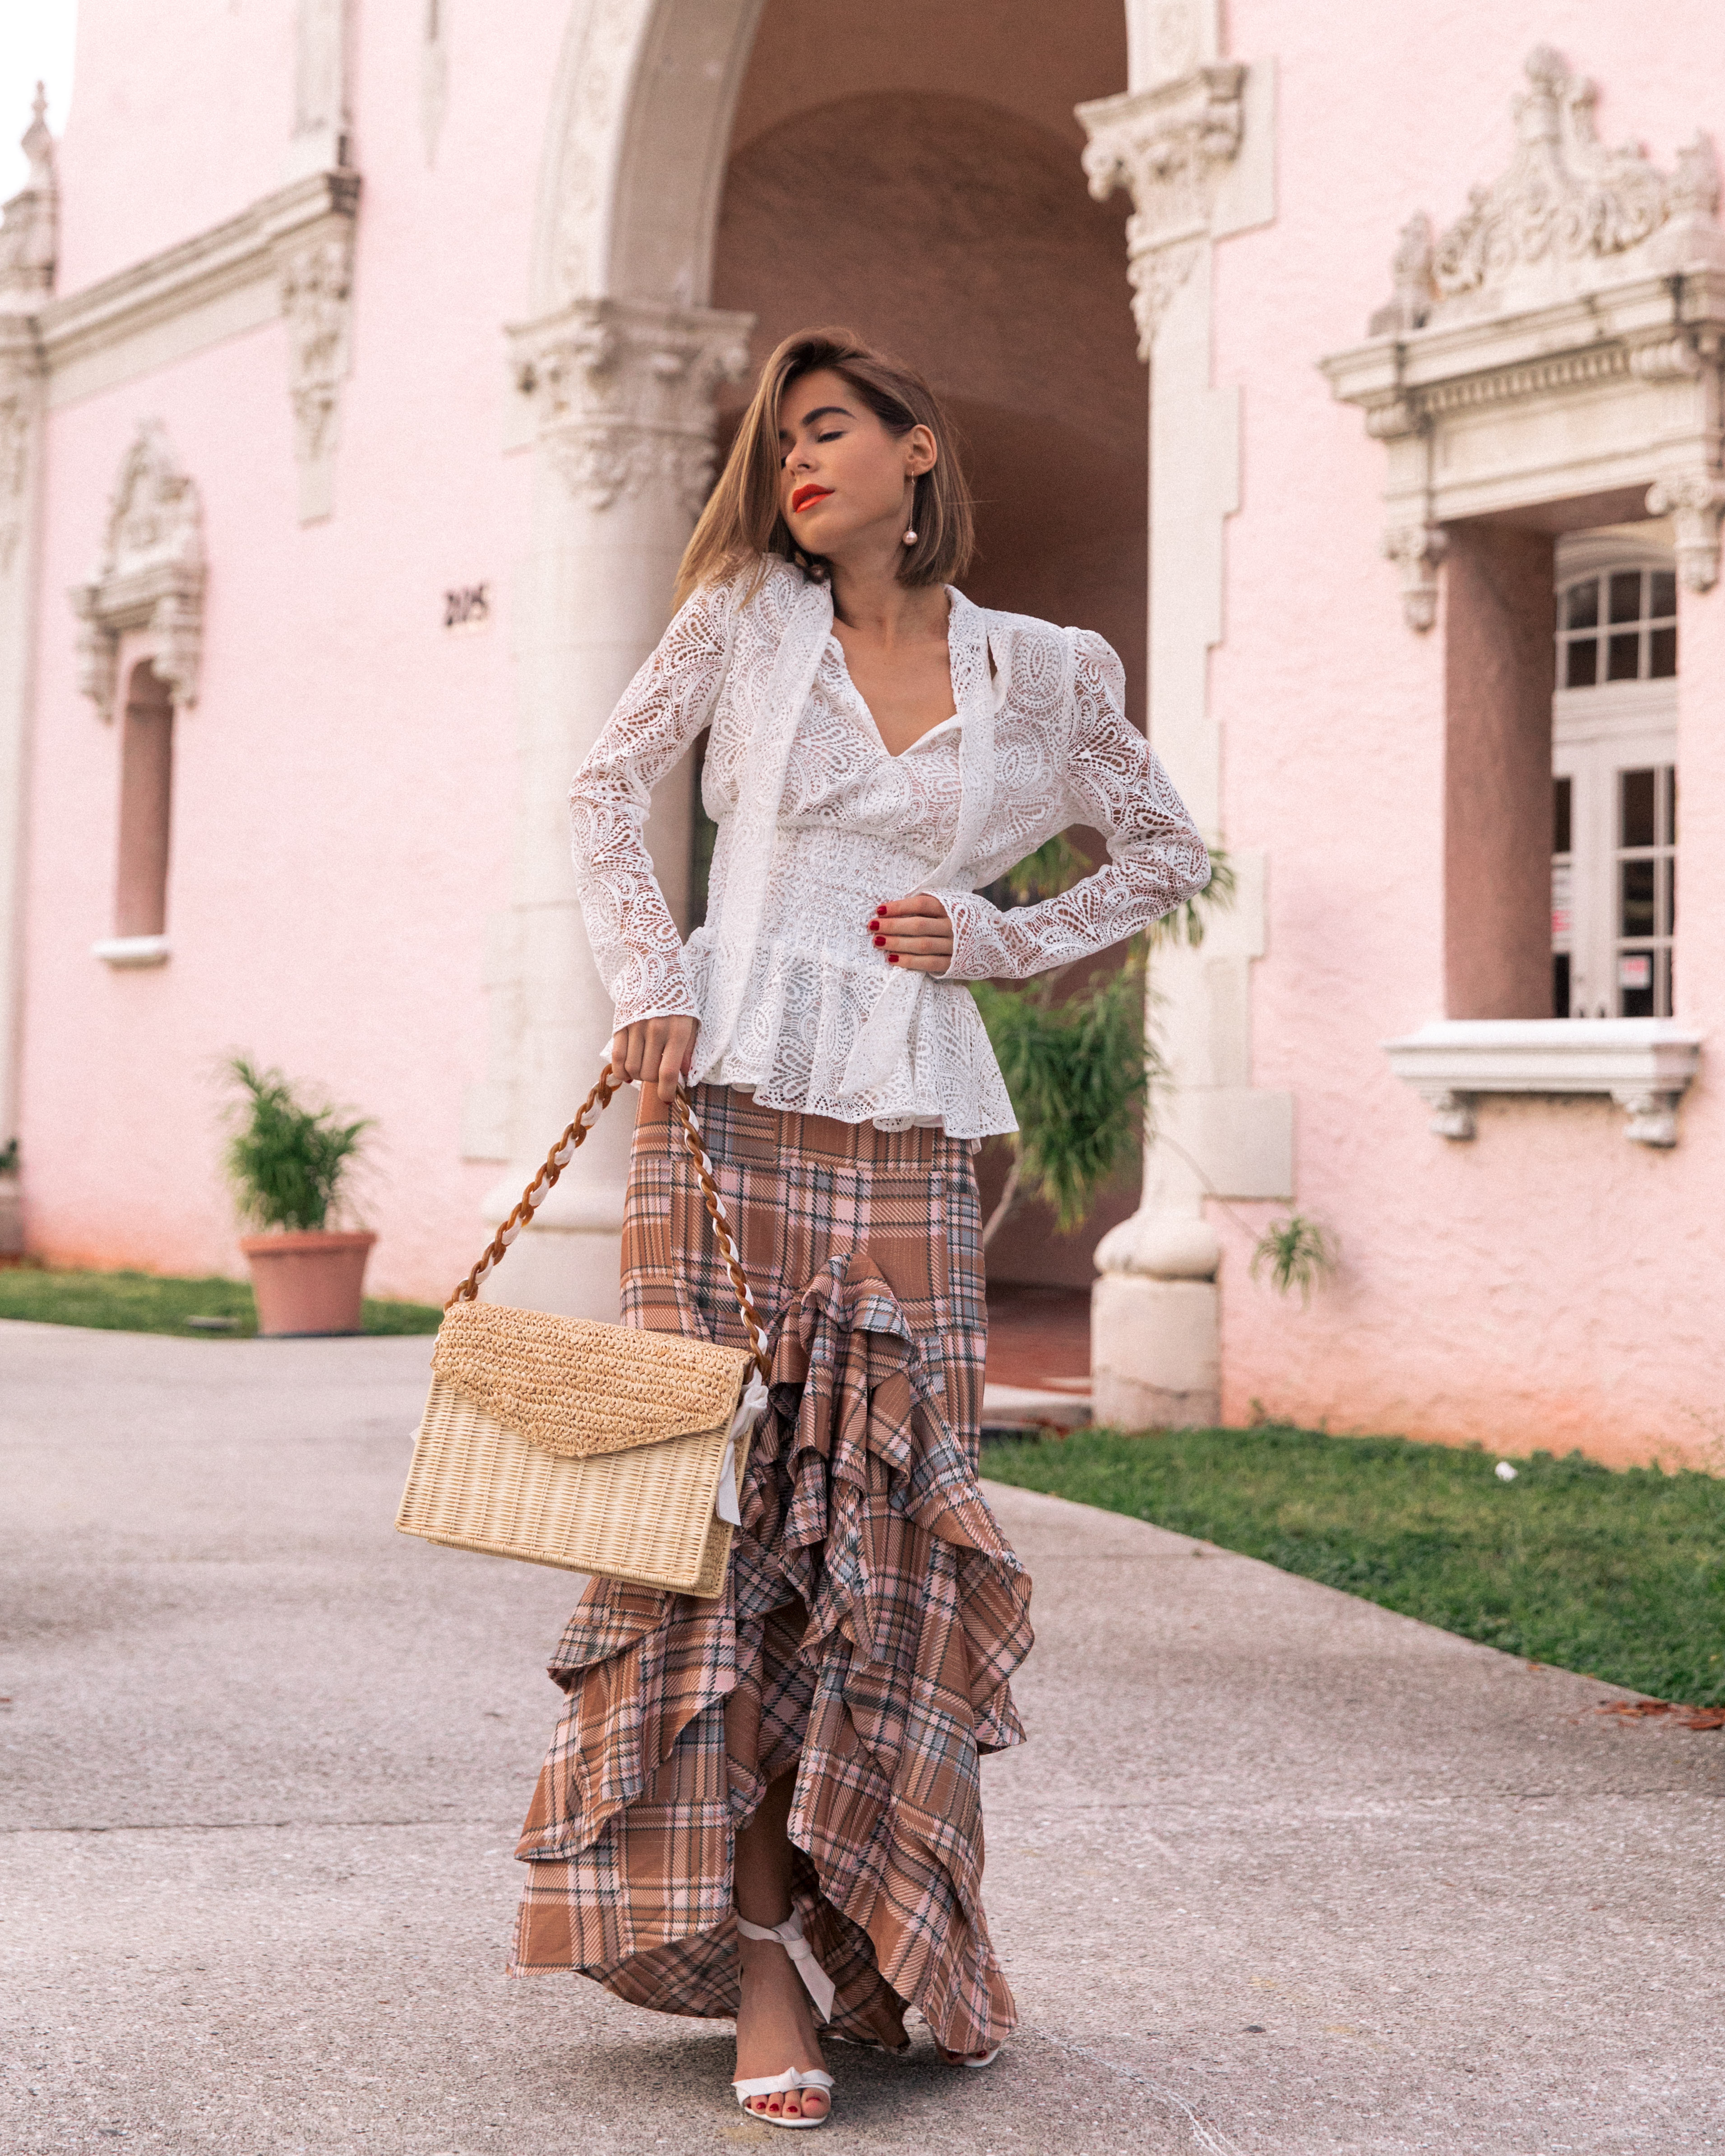 Stephanie Hill wears ootd featuring Maje, Patbo and more on The Style Bungalow